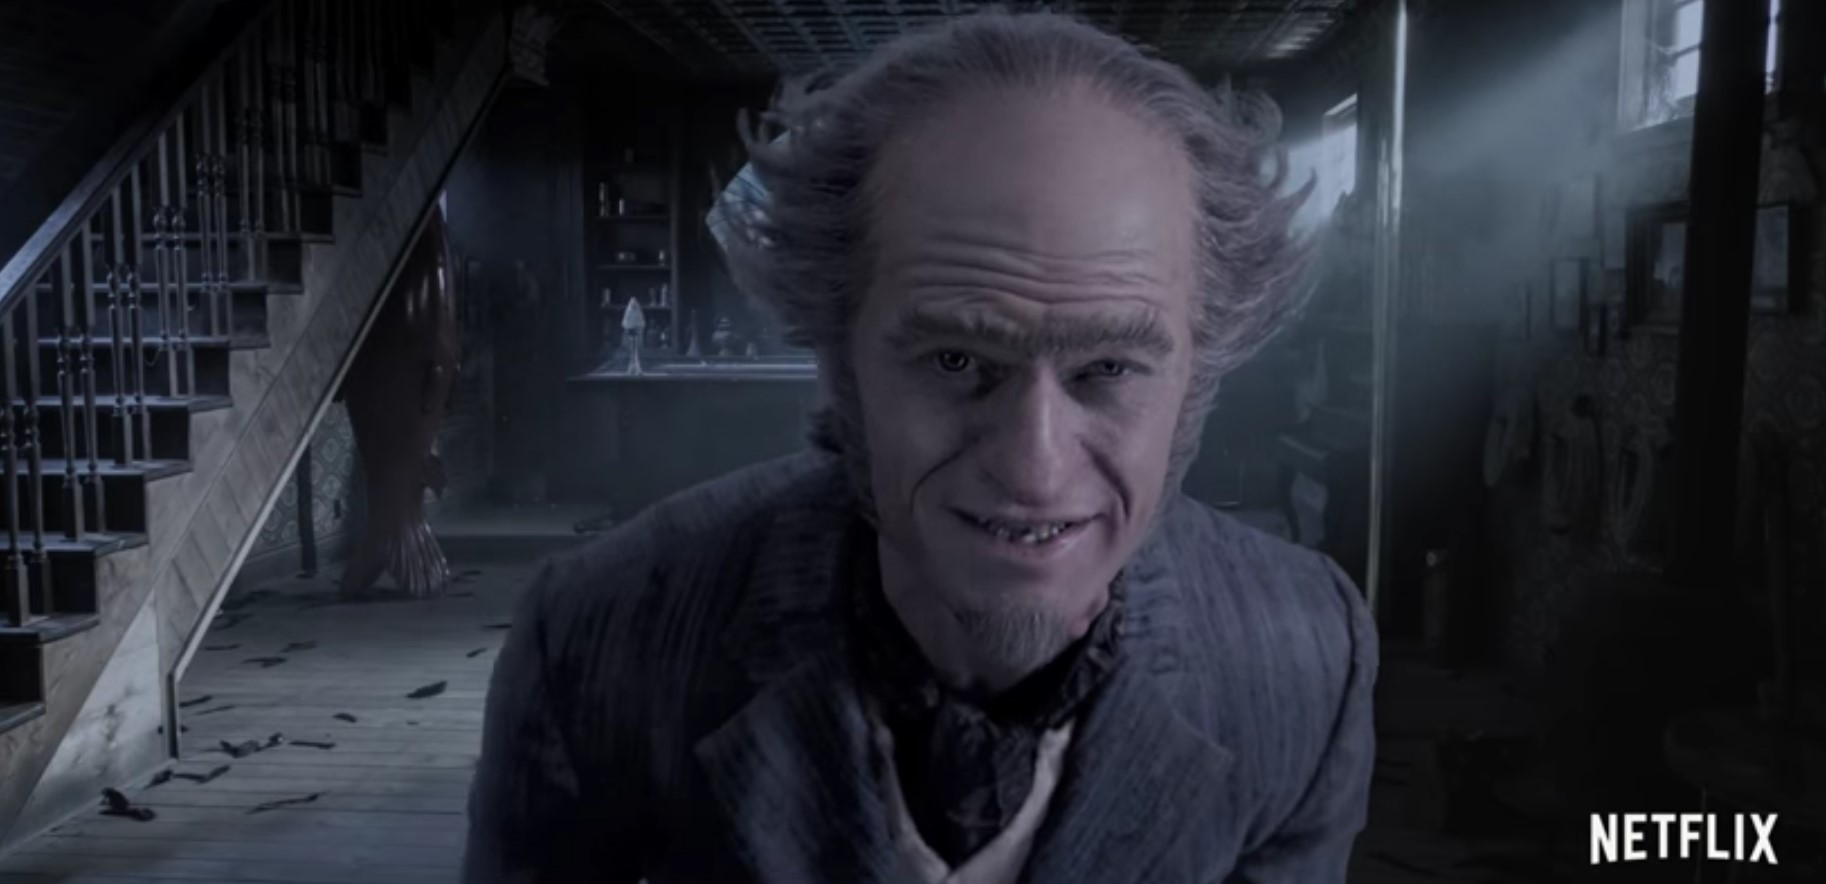 Count Olaf Returns in New Images of A Series of Unfortunate Events 3